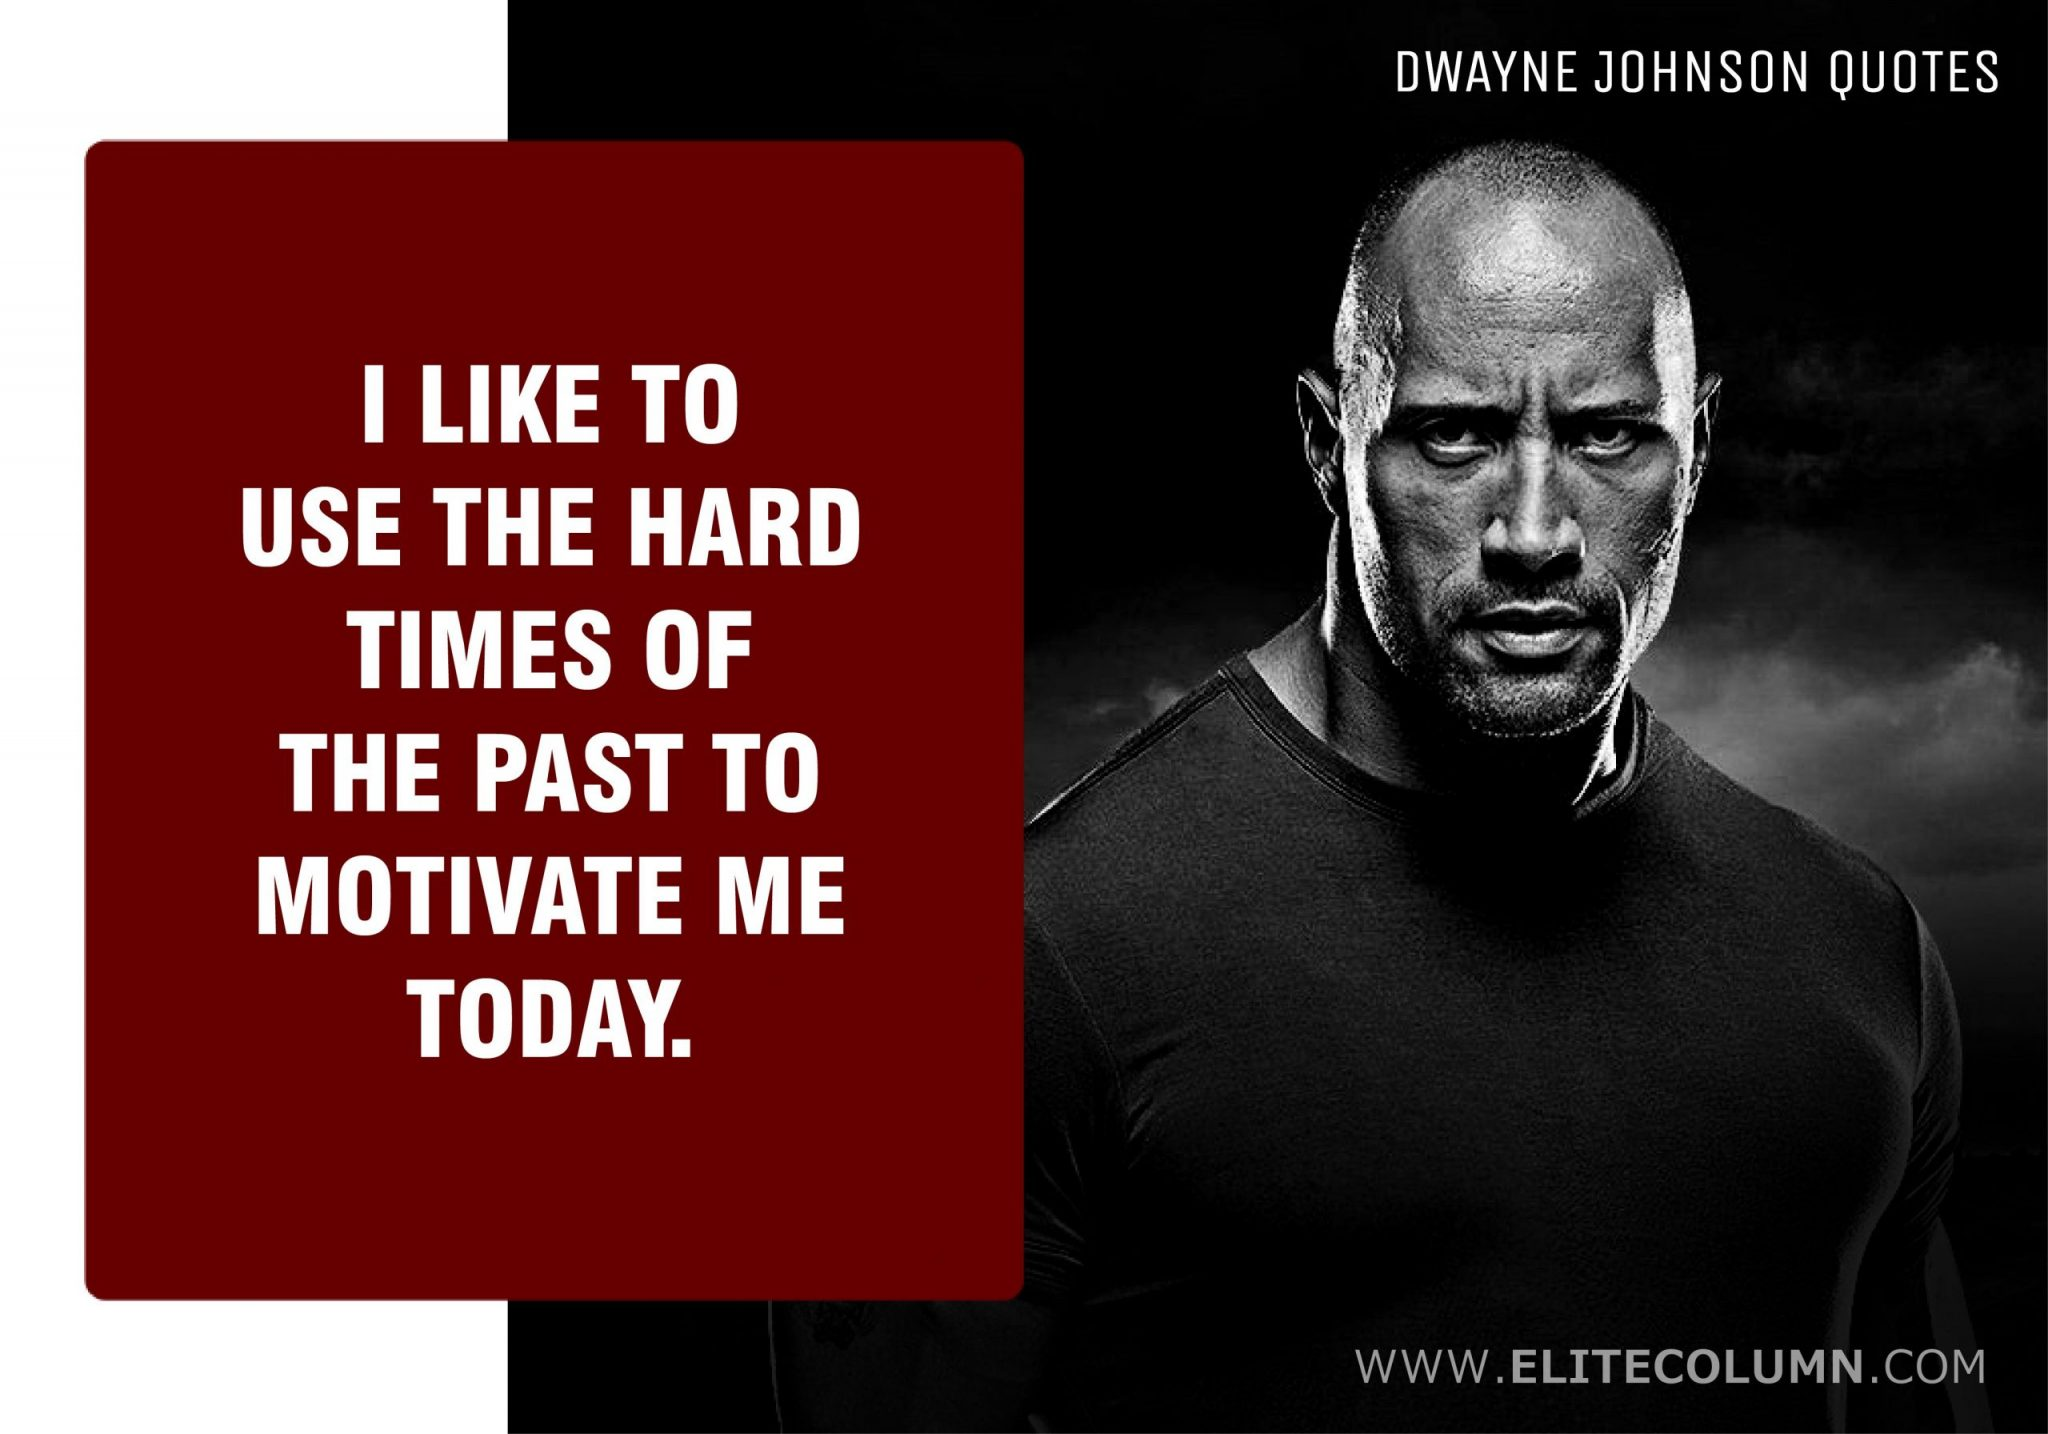 Dwayne Johnson Quotes (2)